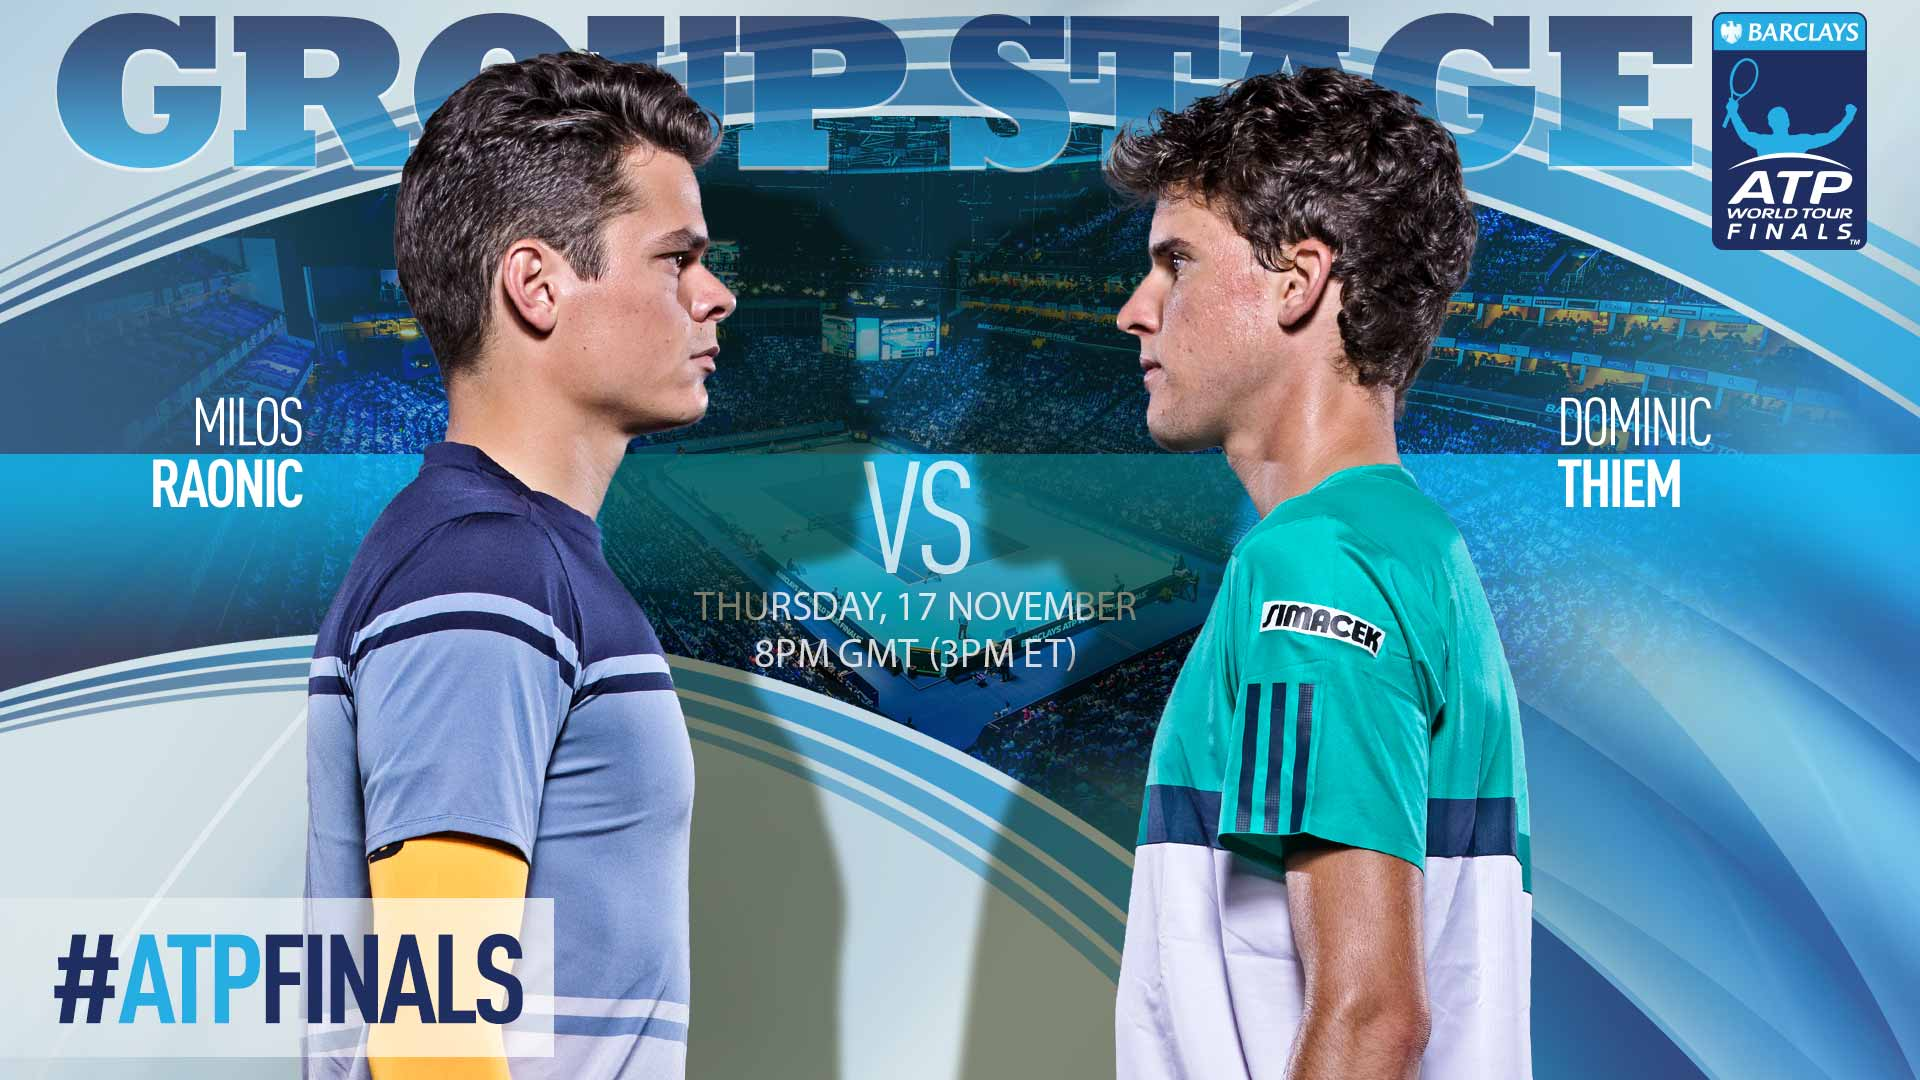 Milos Raonic battles Dominic Thiem on Day 5 of the Barclays ATP World Tour Finals.